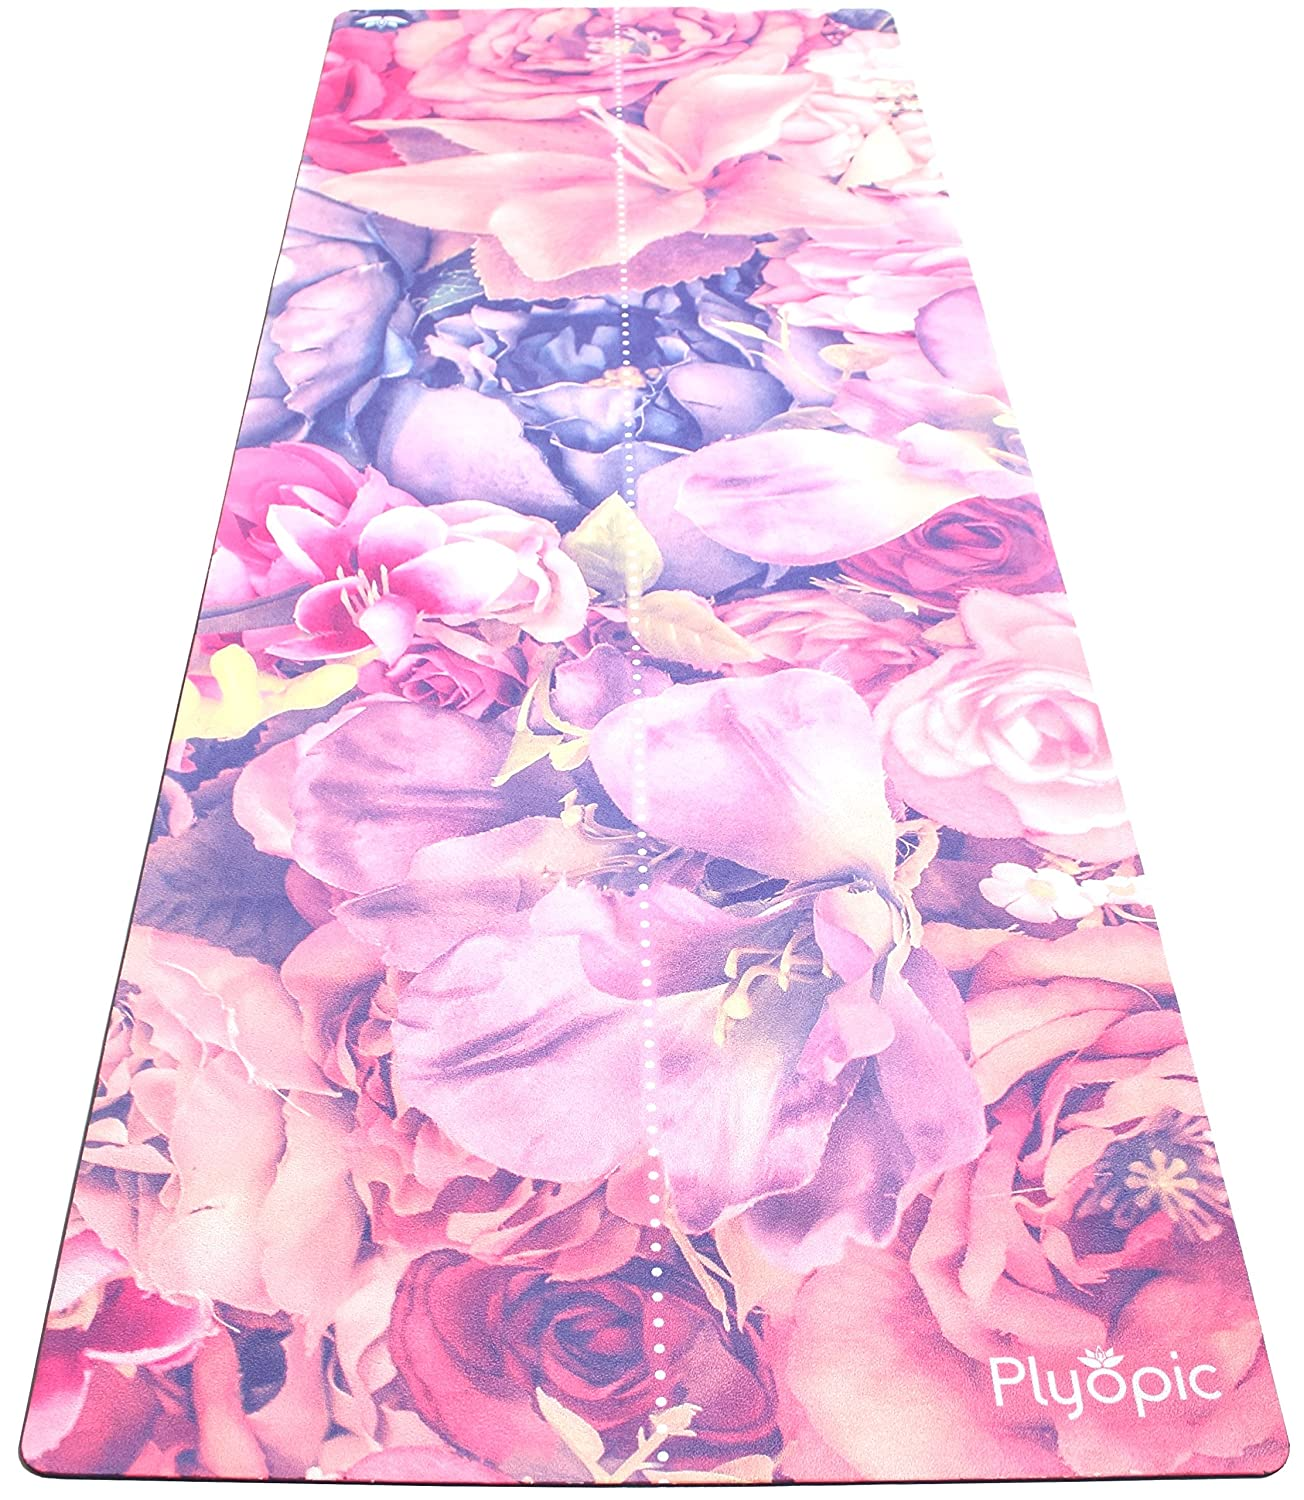 Eco Natural Yoga Mat Towel Combo: Mat Towels : Online Shopping For Clothing, Shoes, Jewelry